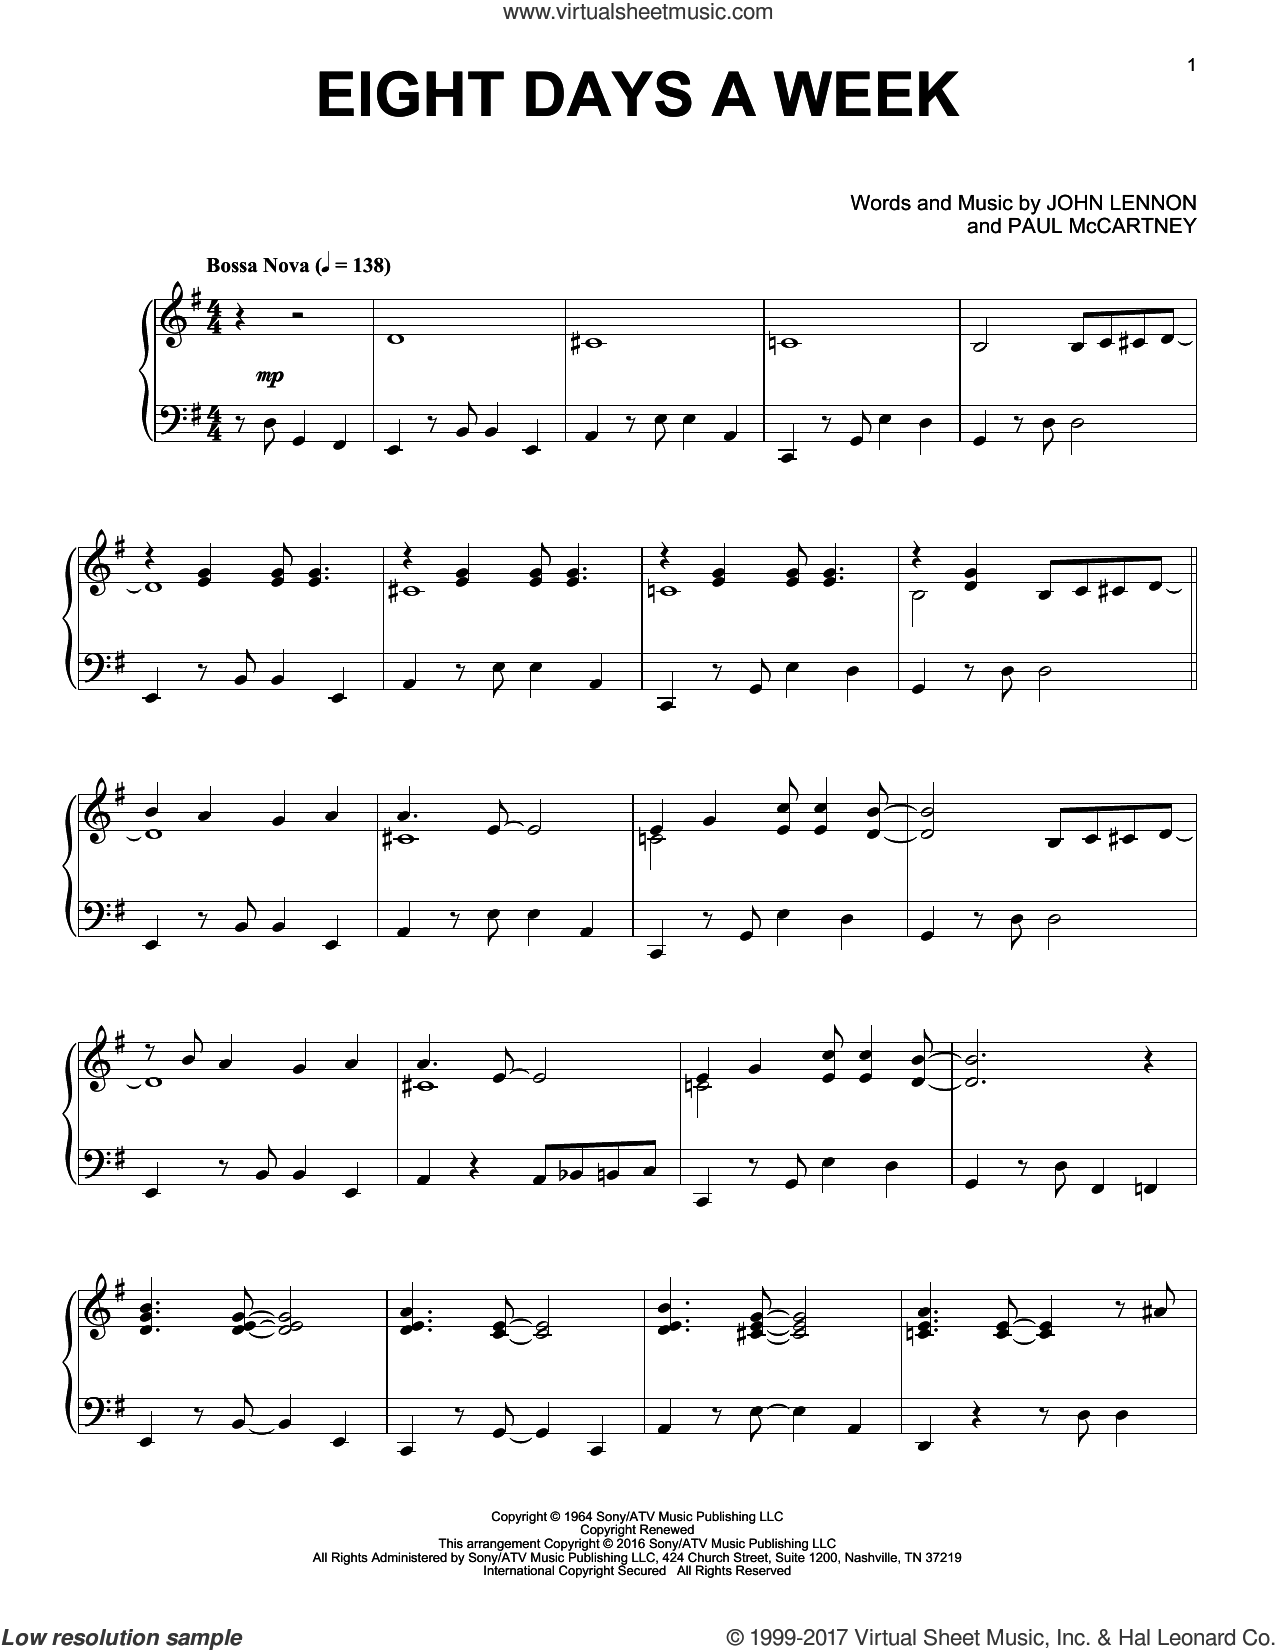 Eight Days A Week [Jazz version] sheet music for piano solo by The Beatles, John Lennon and Paul McCartney, intermediate skill level